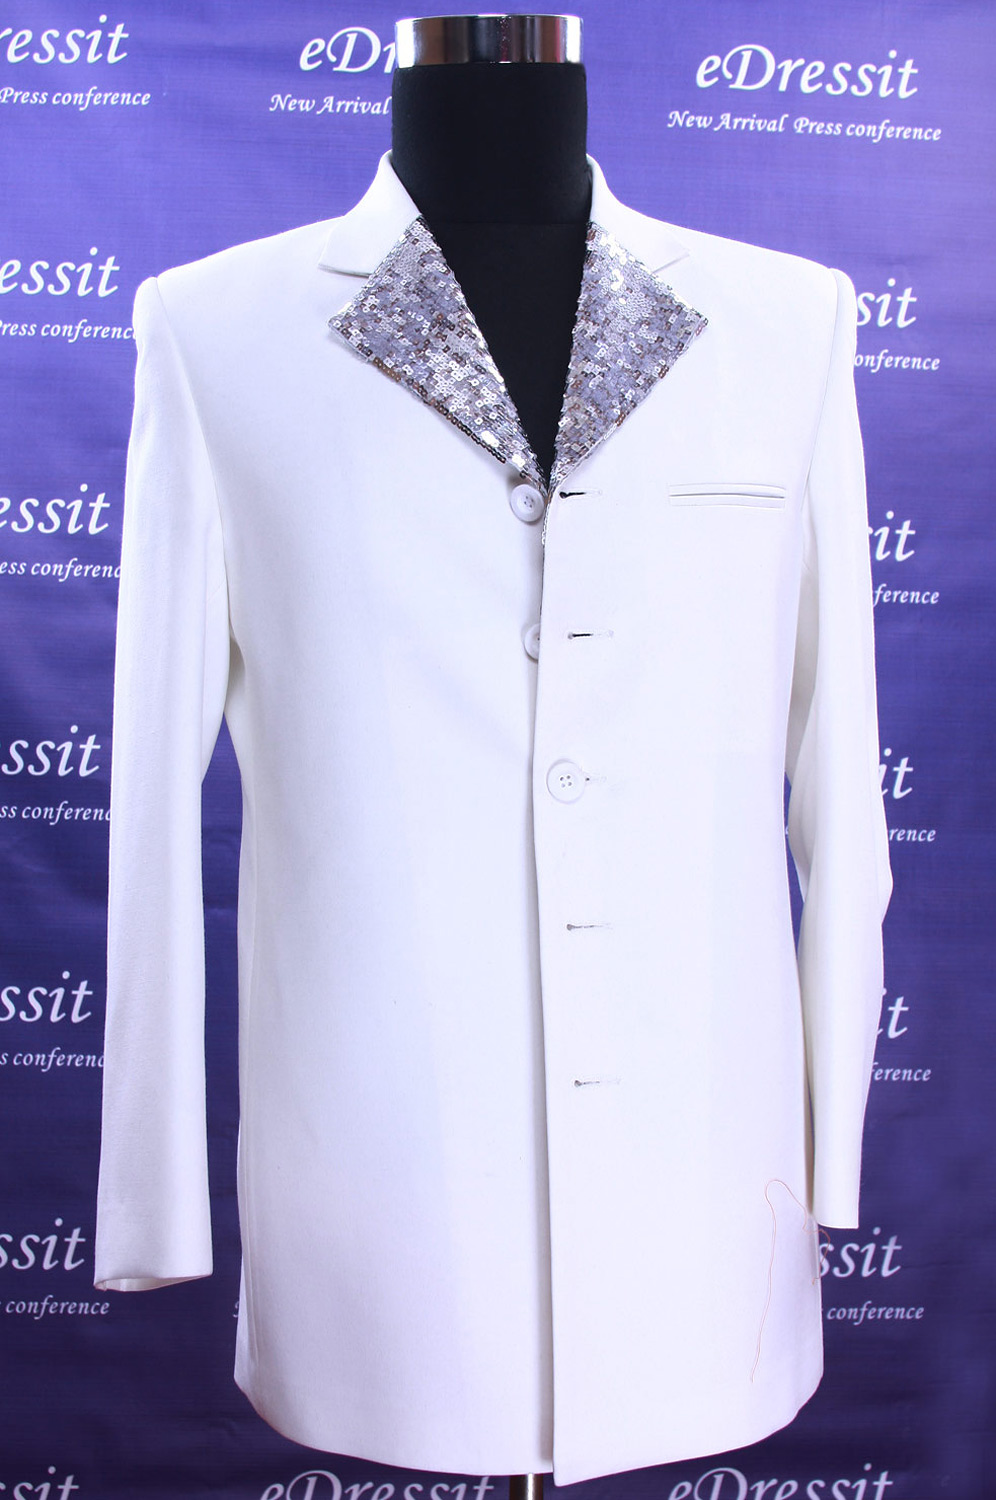 eDressit Men Suits/Tuxedo/Dinner Jacket Made Measure (15090307)